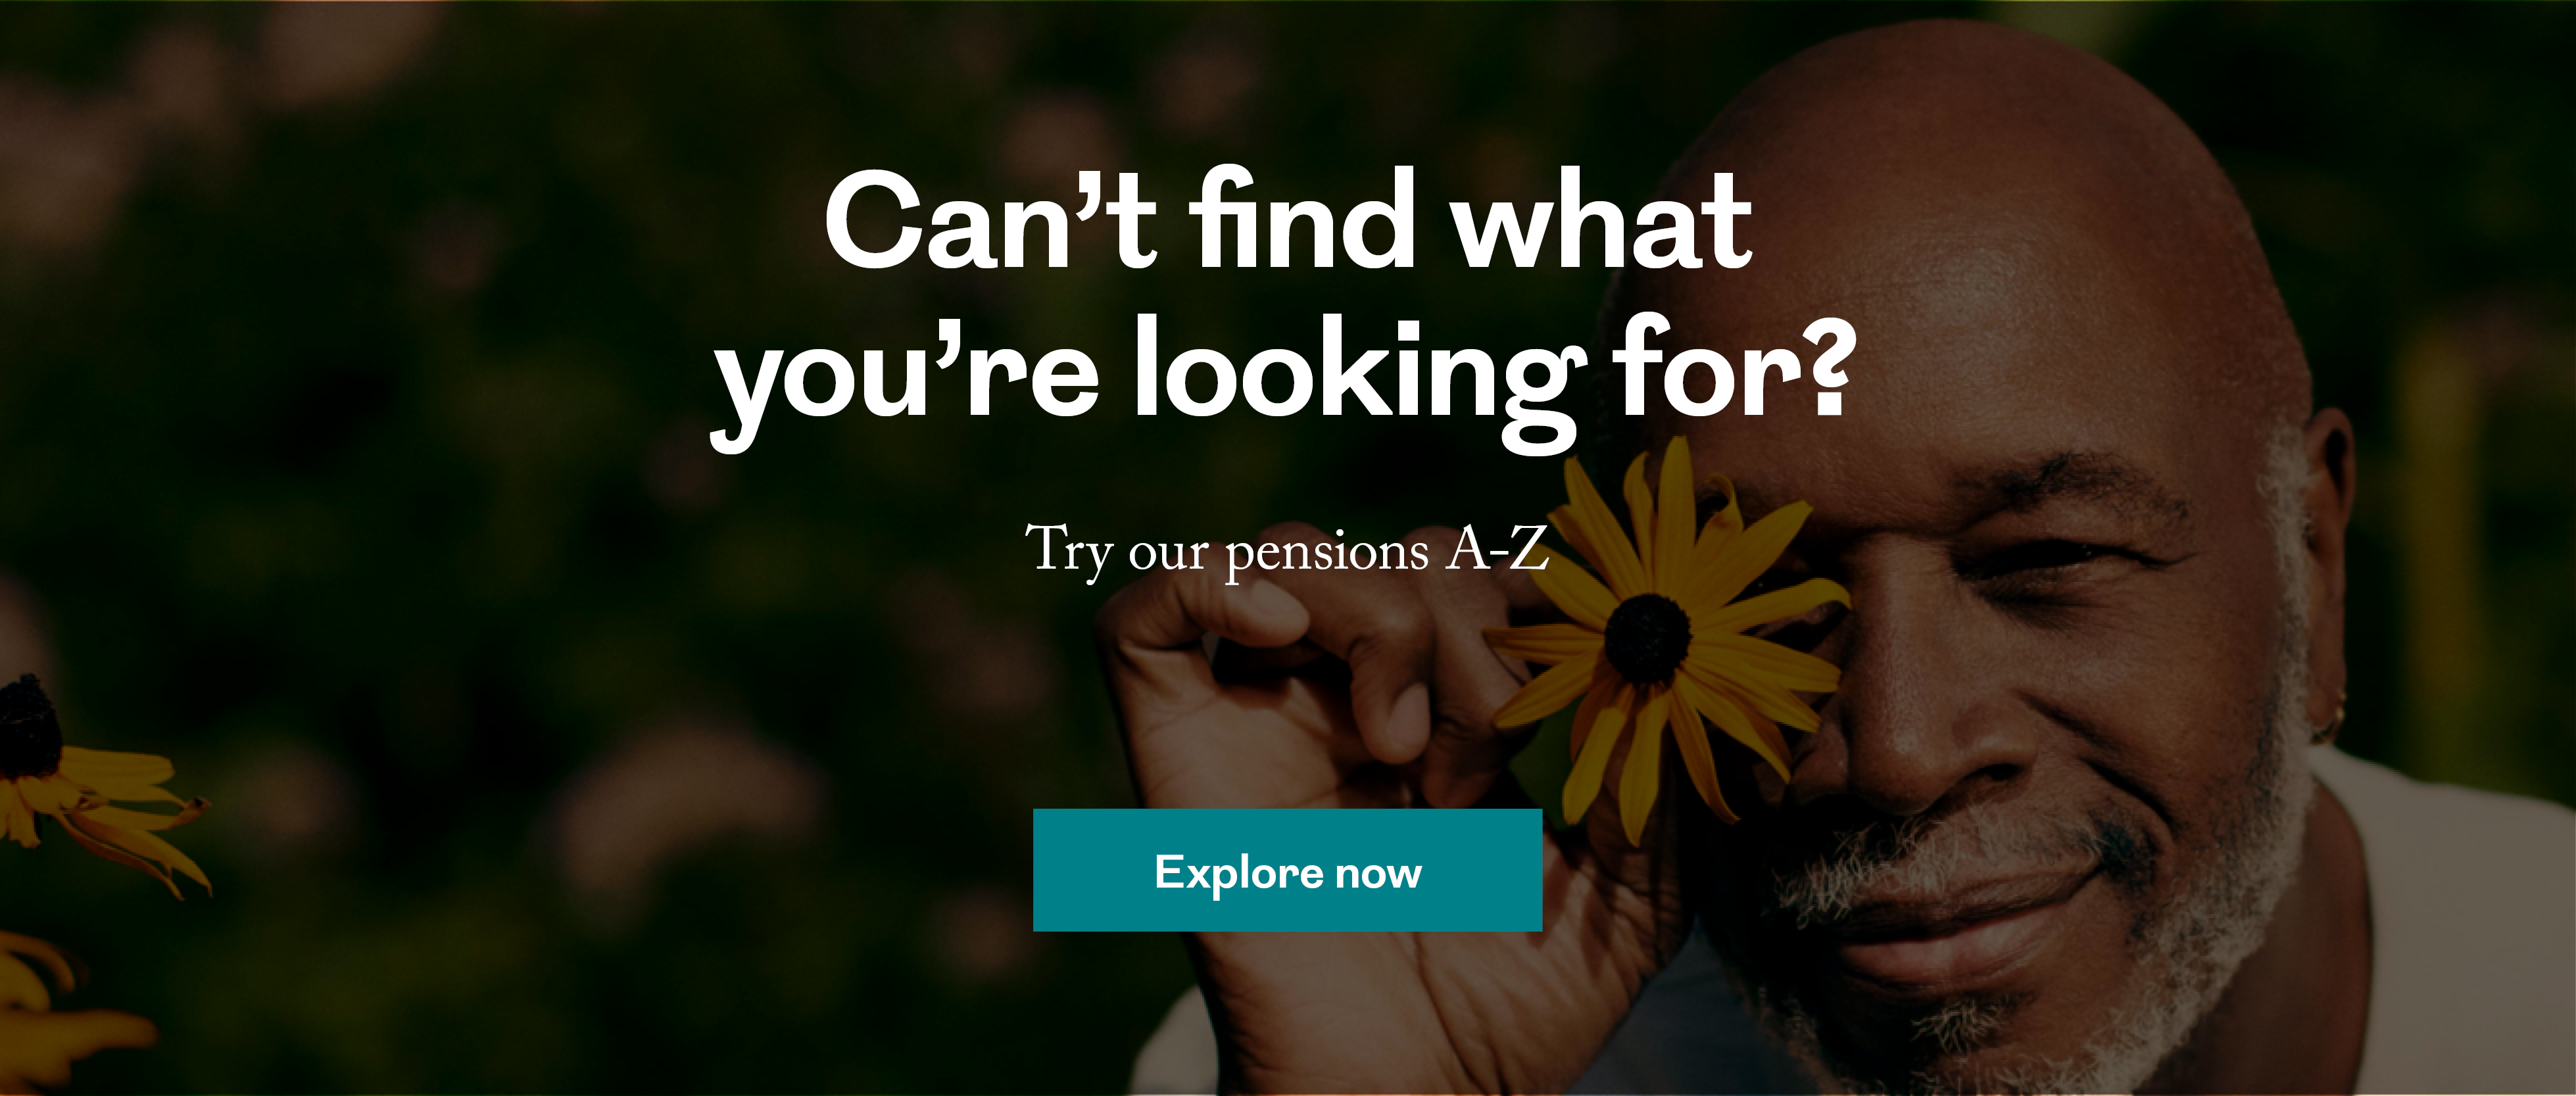 Can't find what you're looking for? Try our pensions A to Z, find out more